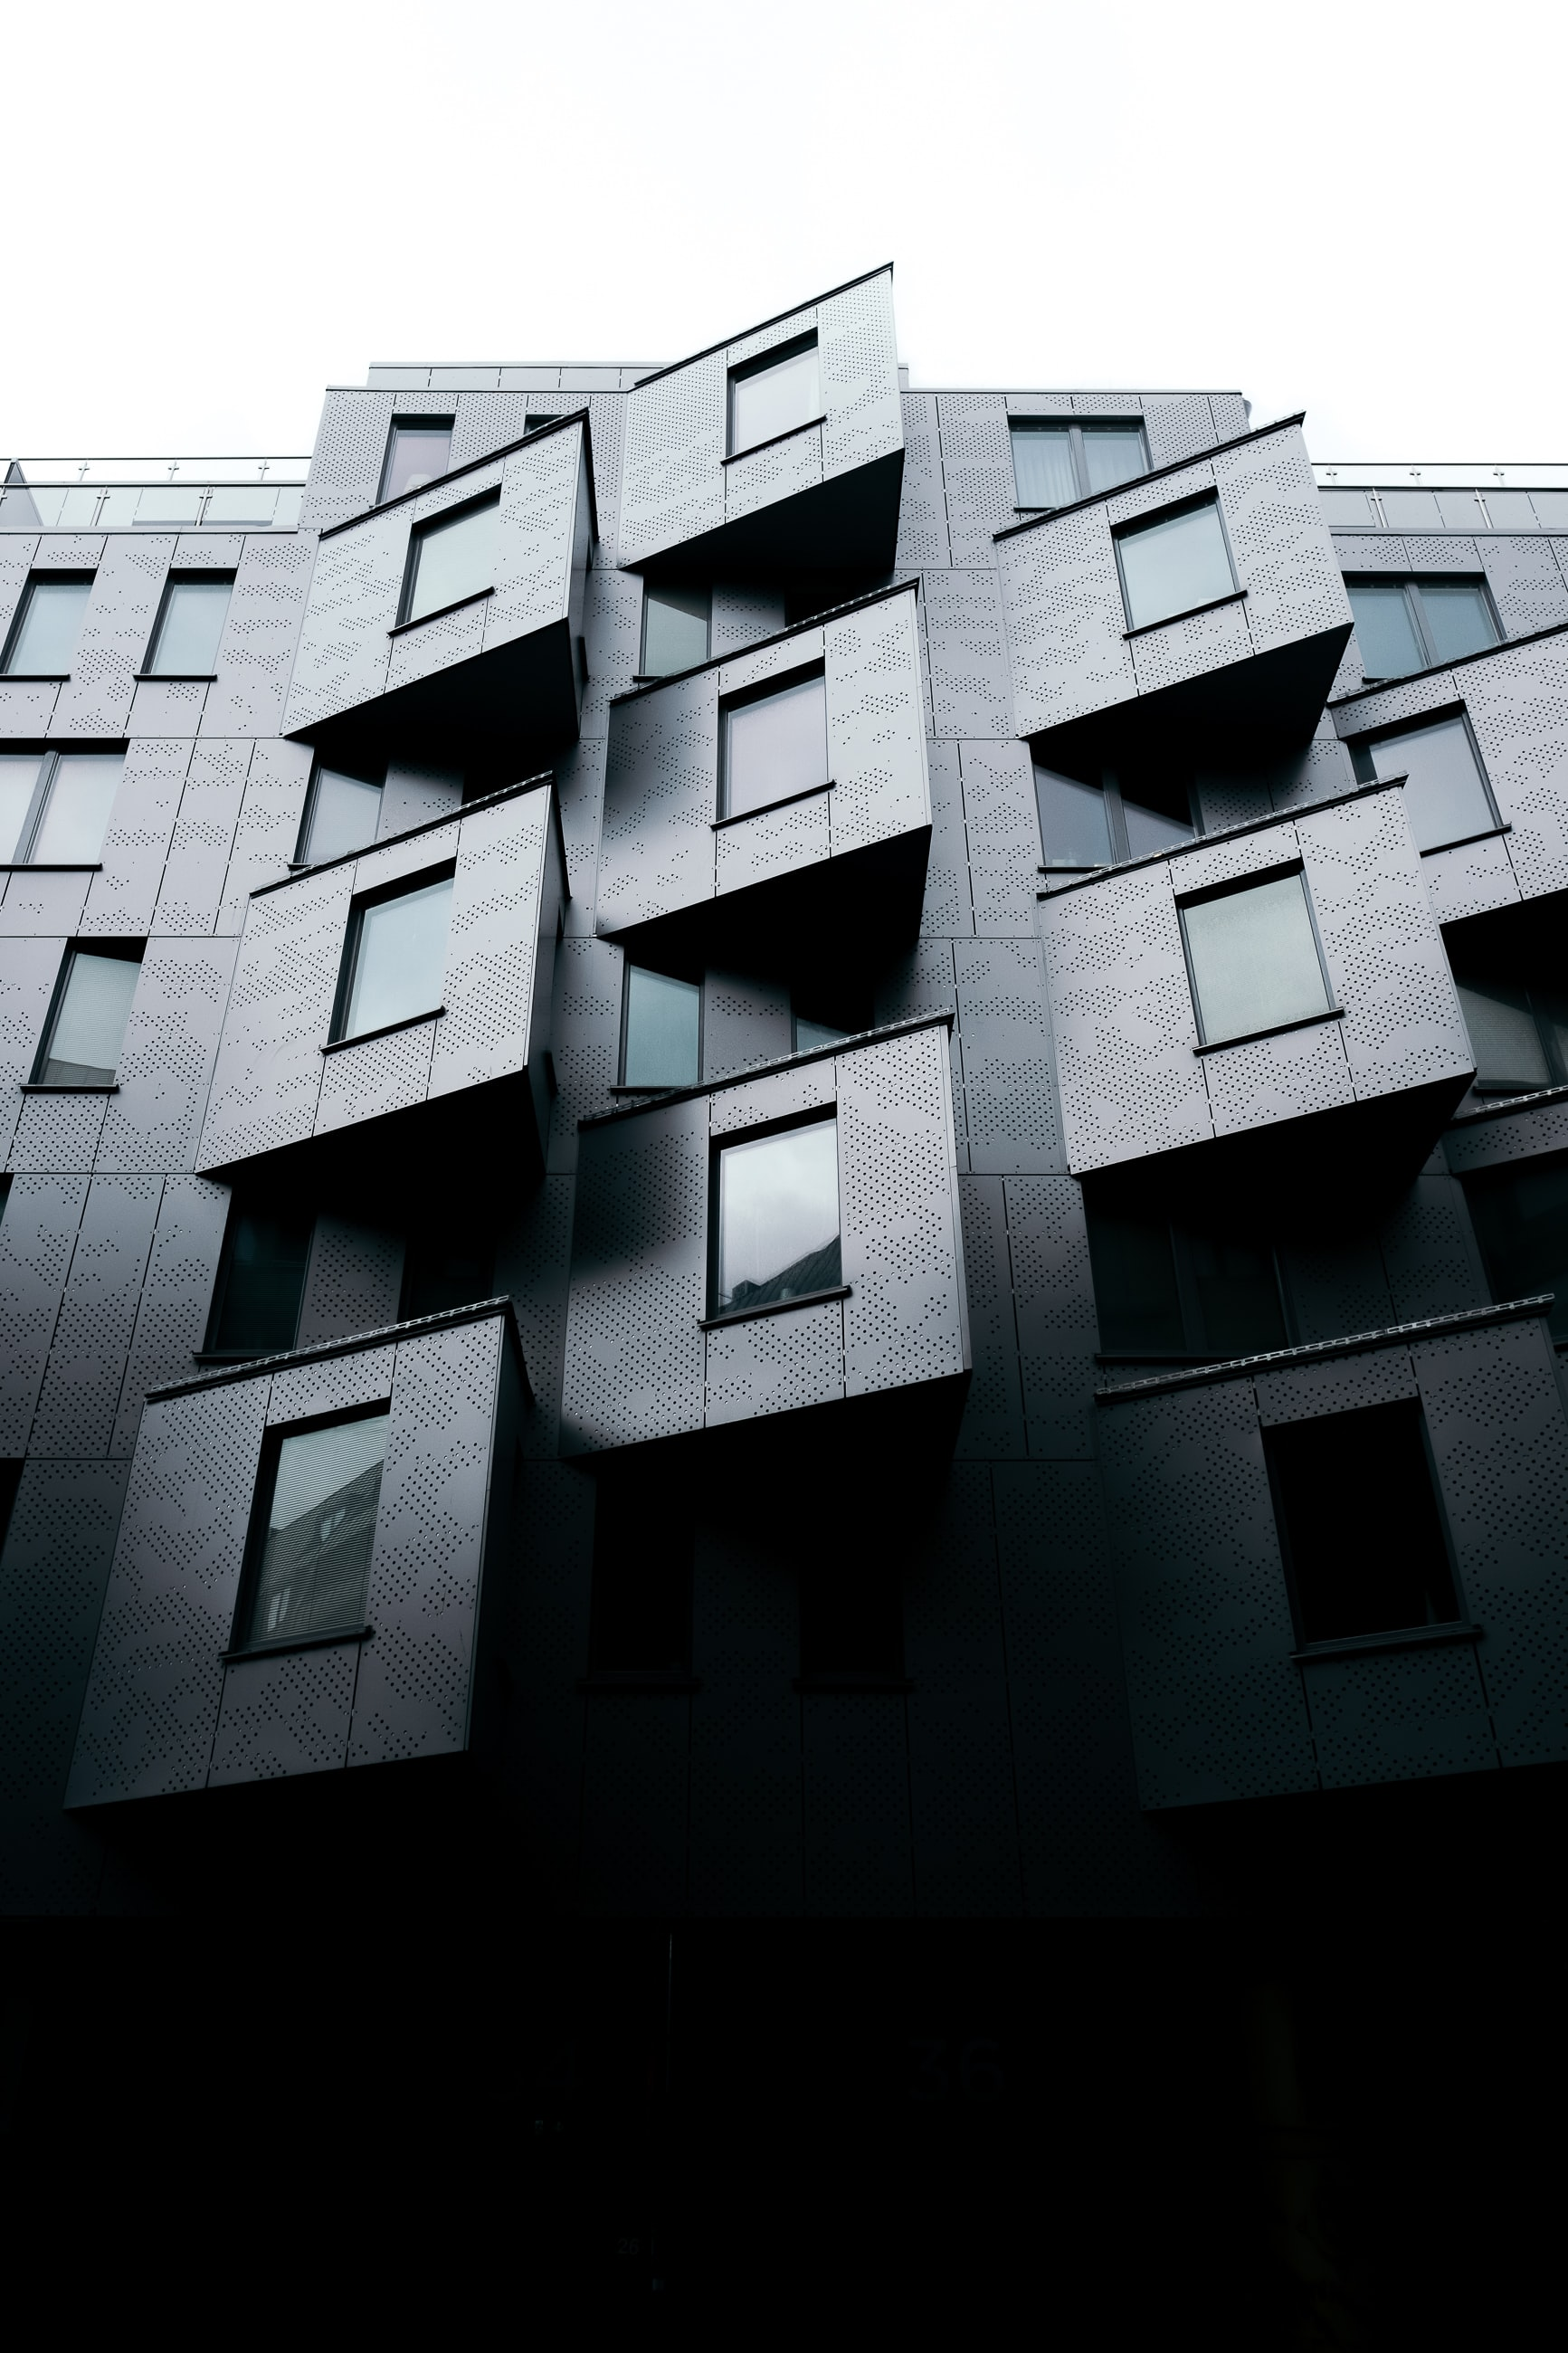 Protruding windows in a modern building facade in Gothenburg